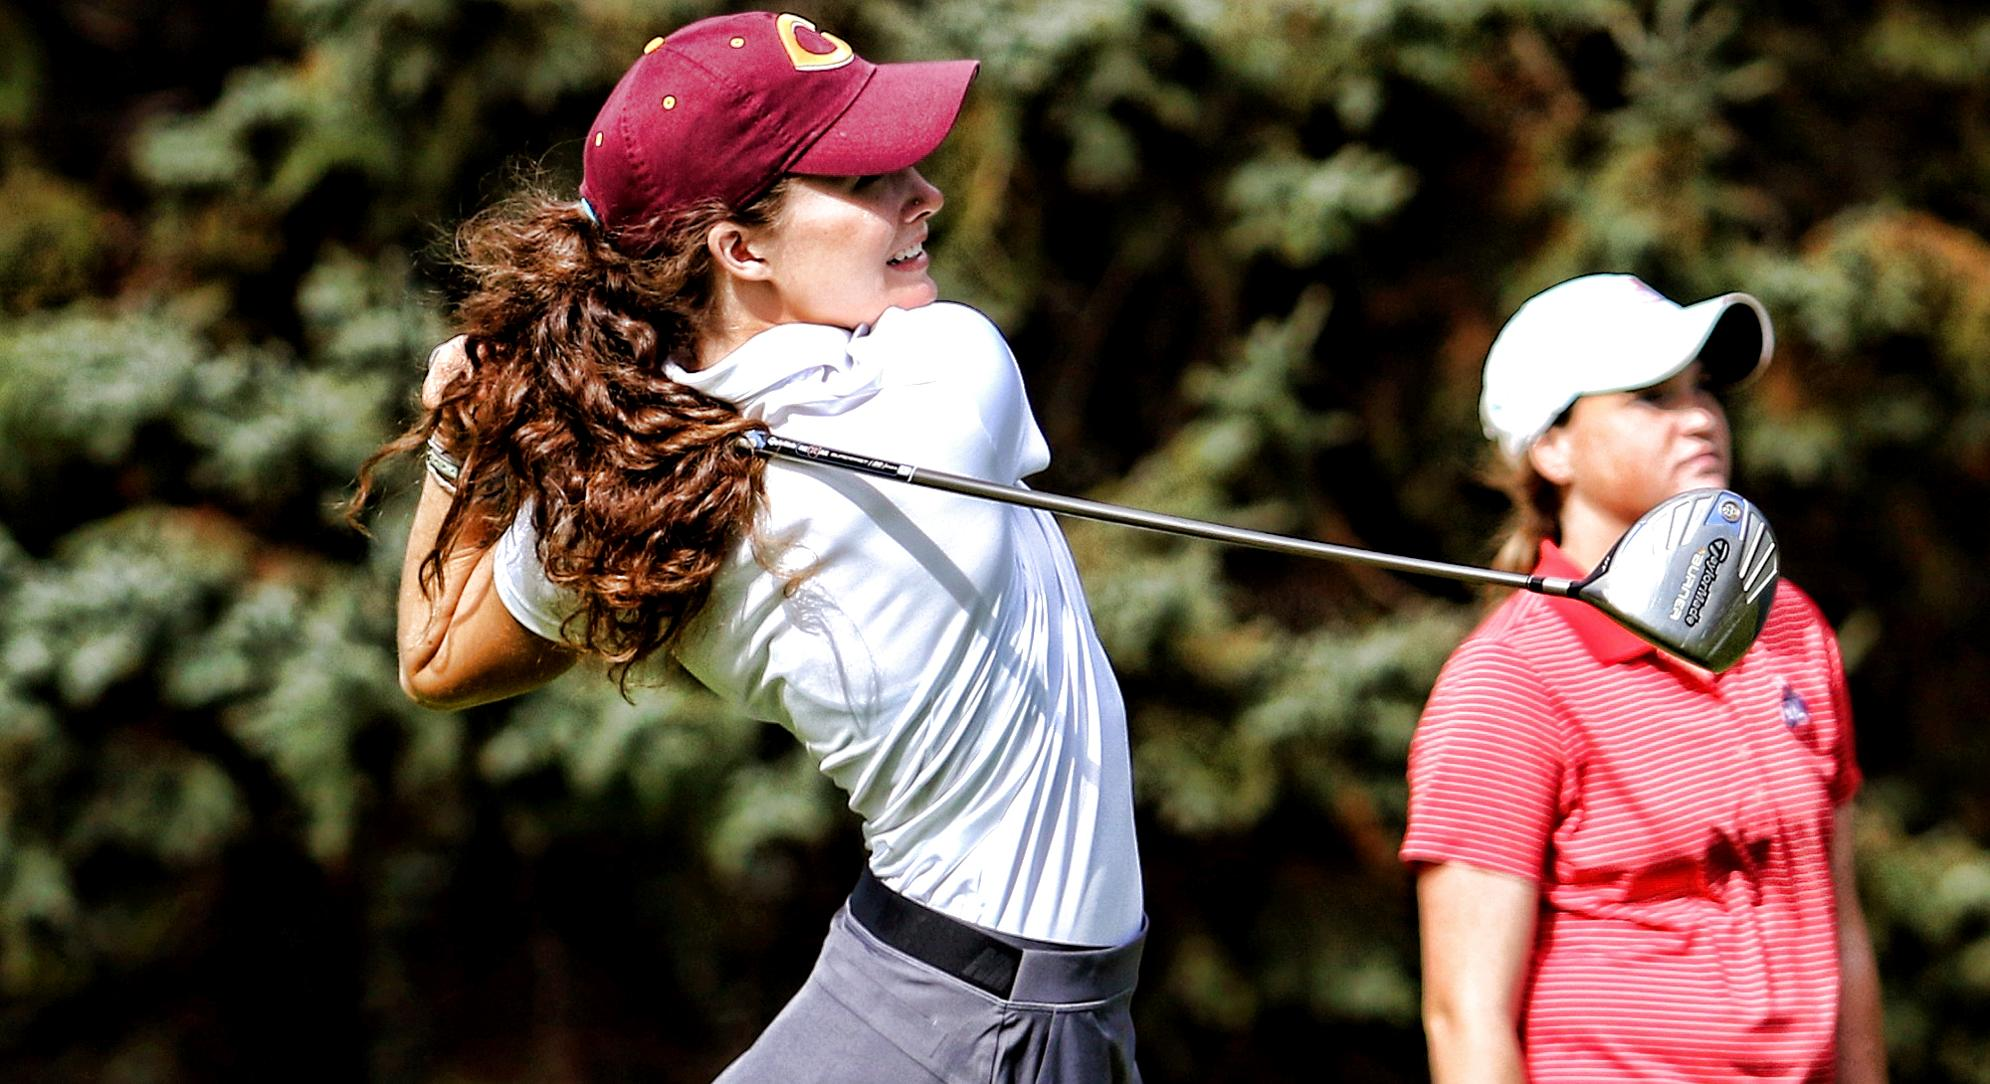 Senior Emily Grace Olson tees off during the third round at the MIAC Championship Meet. (Pic courtesy of Don Stoner - Augsburg Sports Information)